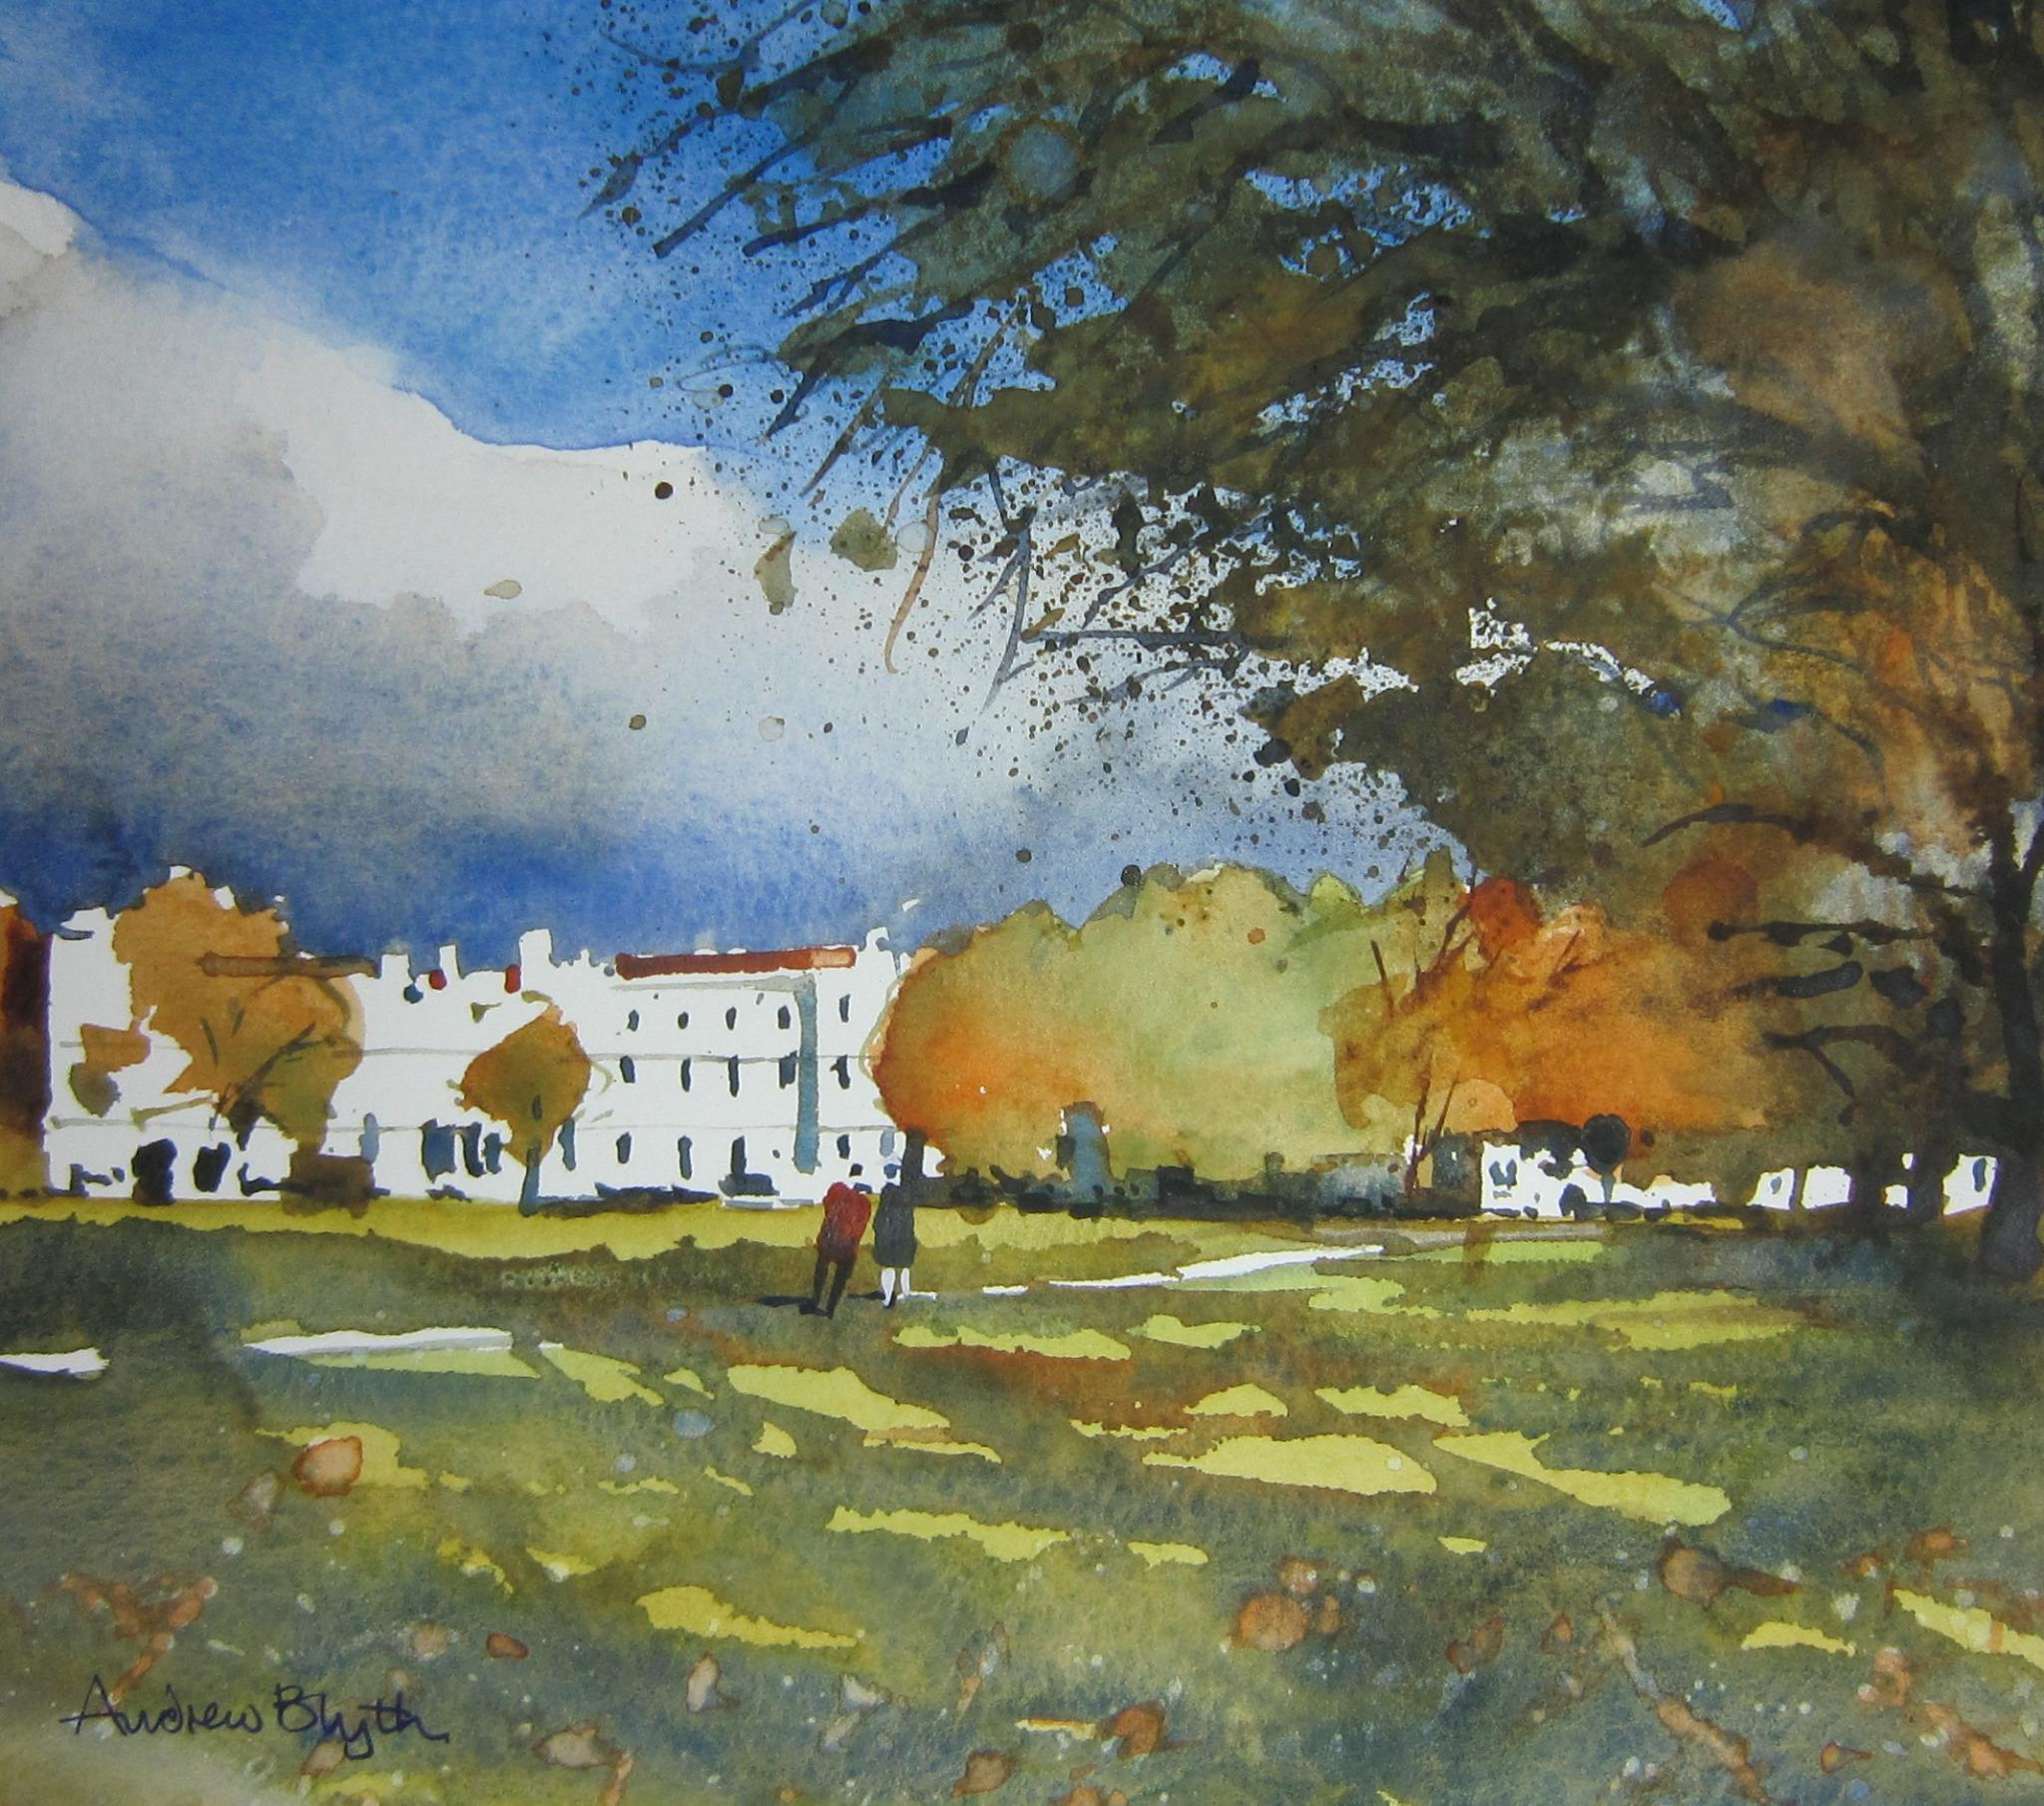 RT @andrew_blyth1: 1of 2 watercolours selected for 'Richmond View' @Orleanshg 7feb-31stmay @ryeartists http://t.co/Jz1aLlI5hs